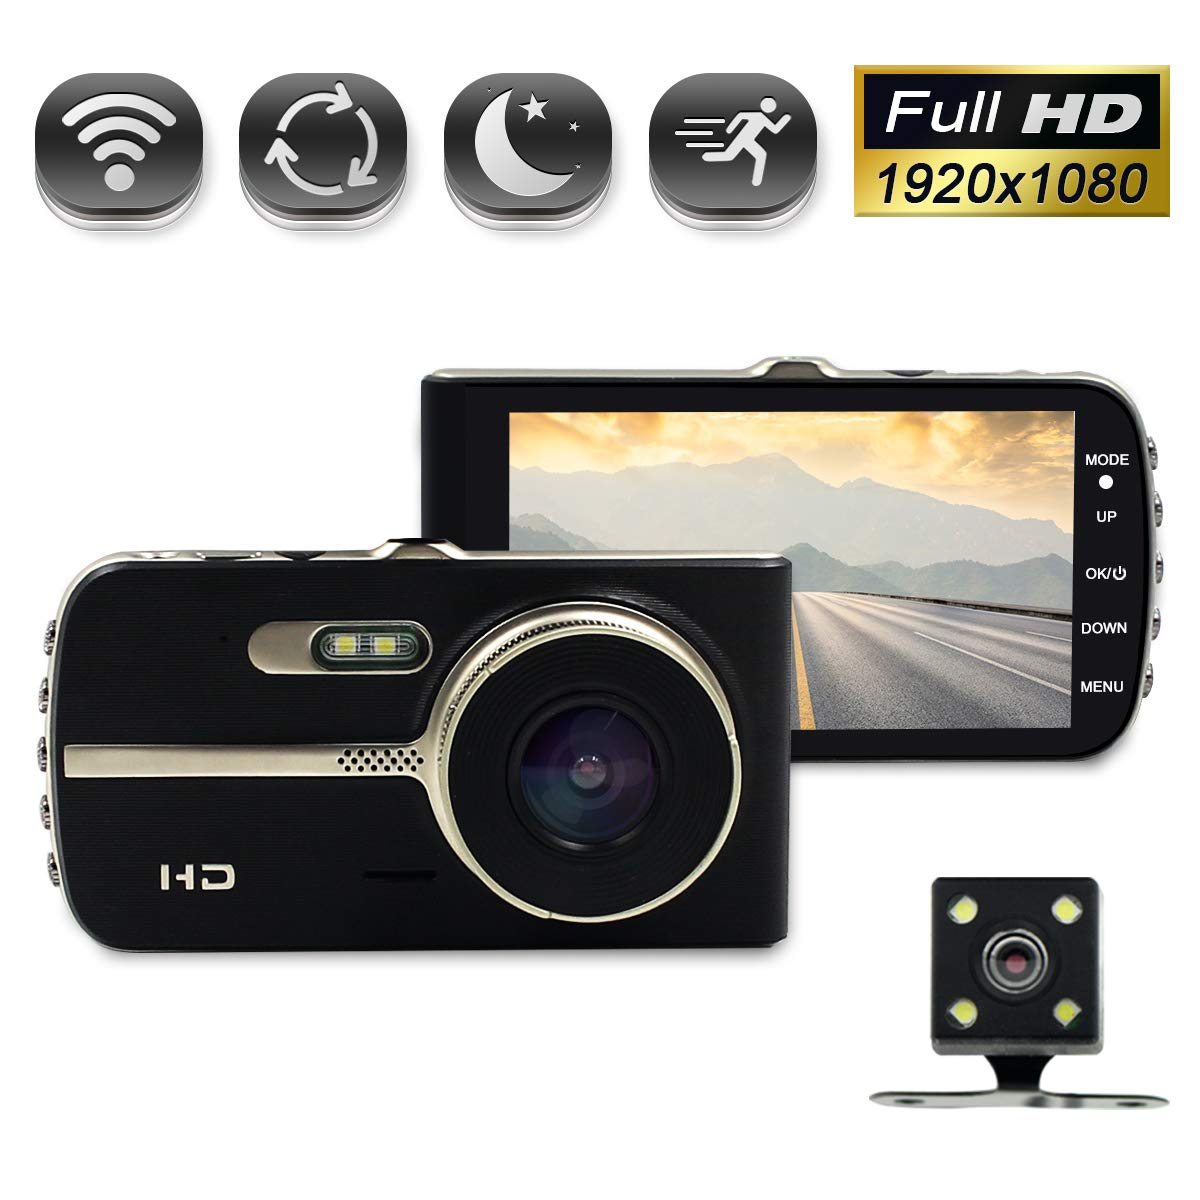 Rear Lens,4.0 IPS Screen 140 Wide Angle Vehicle On-Dash Video Recorder with Night Vision G-Sensor 4.0/'/' IPS Screen 140 Wide Angle Vehicle On-Dash Video Recorder with Night Vision G-Sensor XSJQ Dual Lens Car Dash Cam,1080P Fhd Car Video Camera